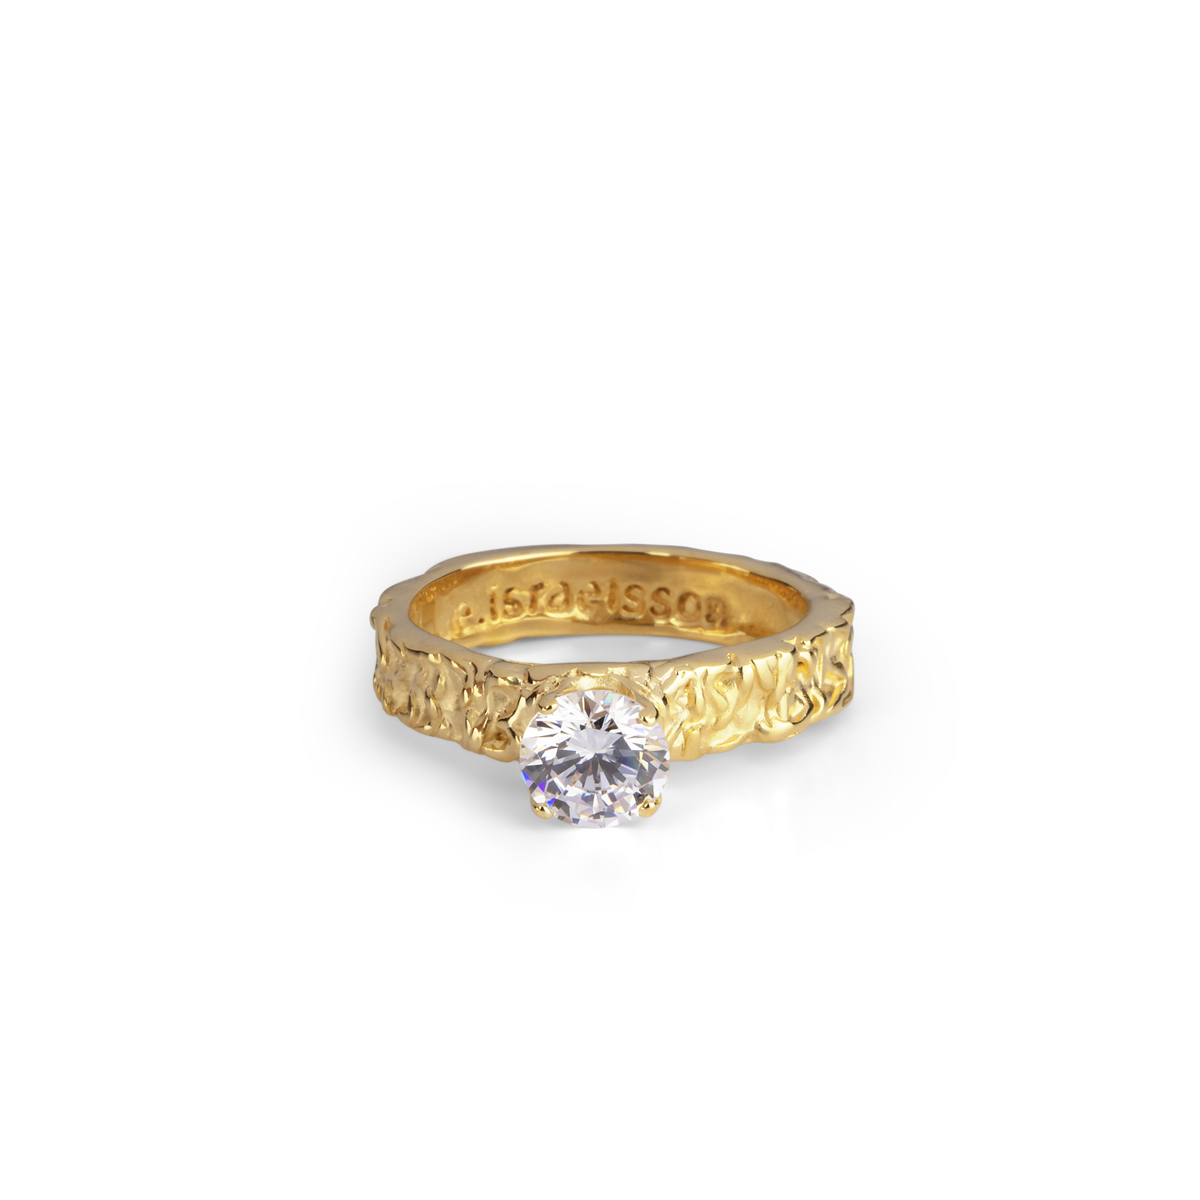 SMALL PRINCESS GOLD RING in the group RINGS at EMMA ISRAELSSON (ring005)